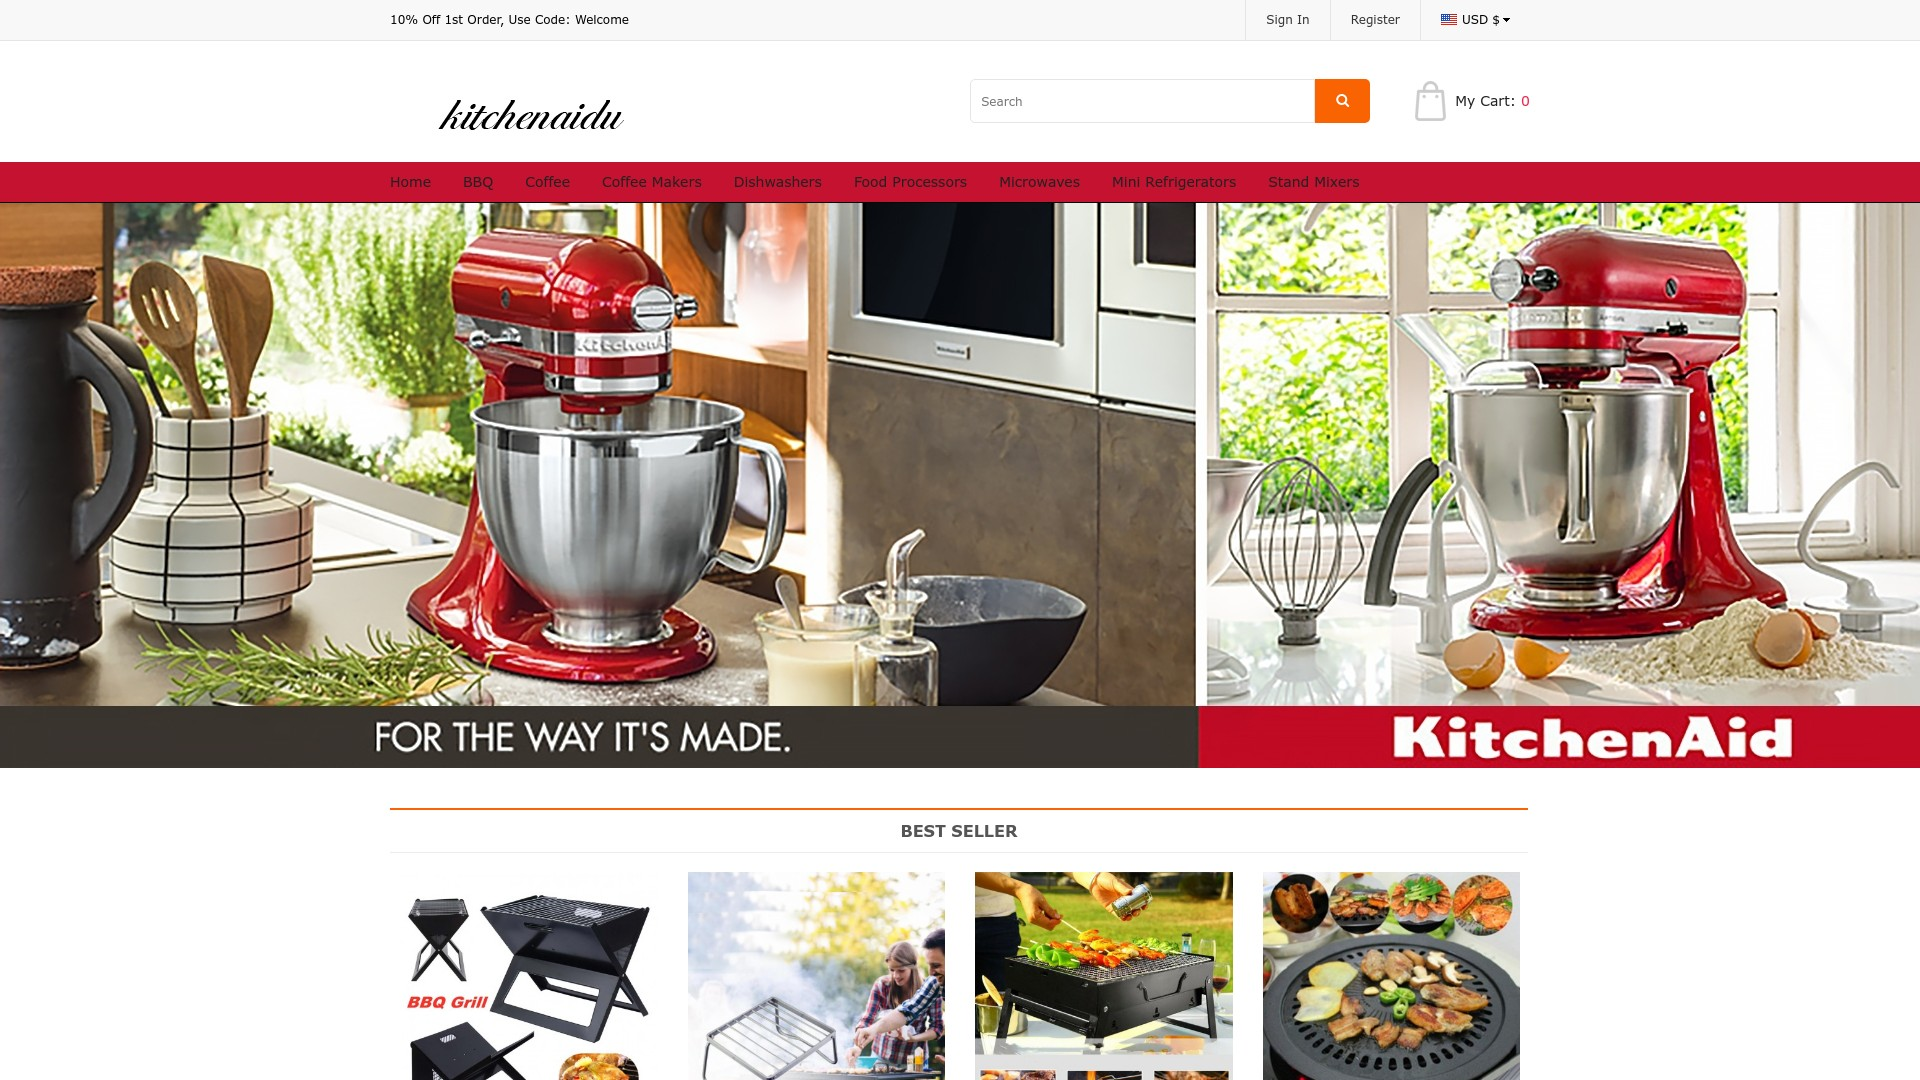 Kitchenaidu.com Scam  Review of the Fake Online Store